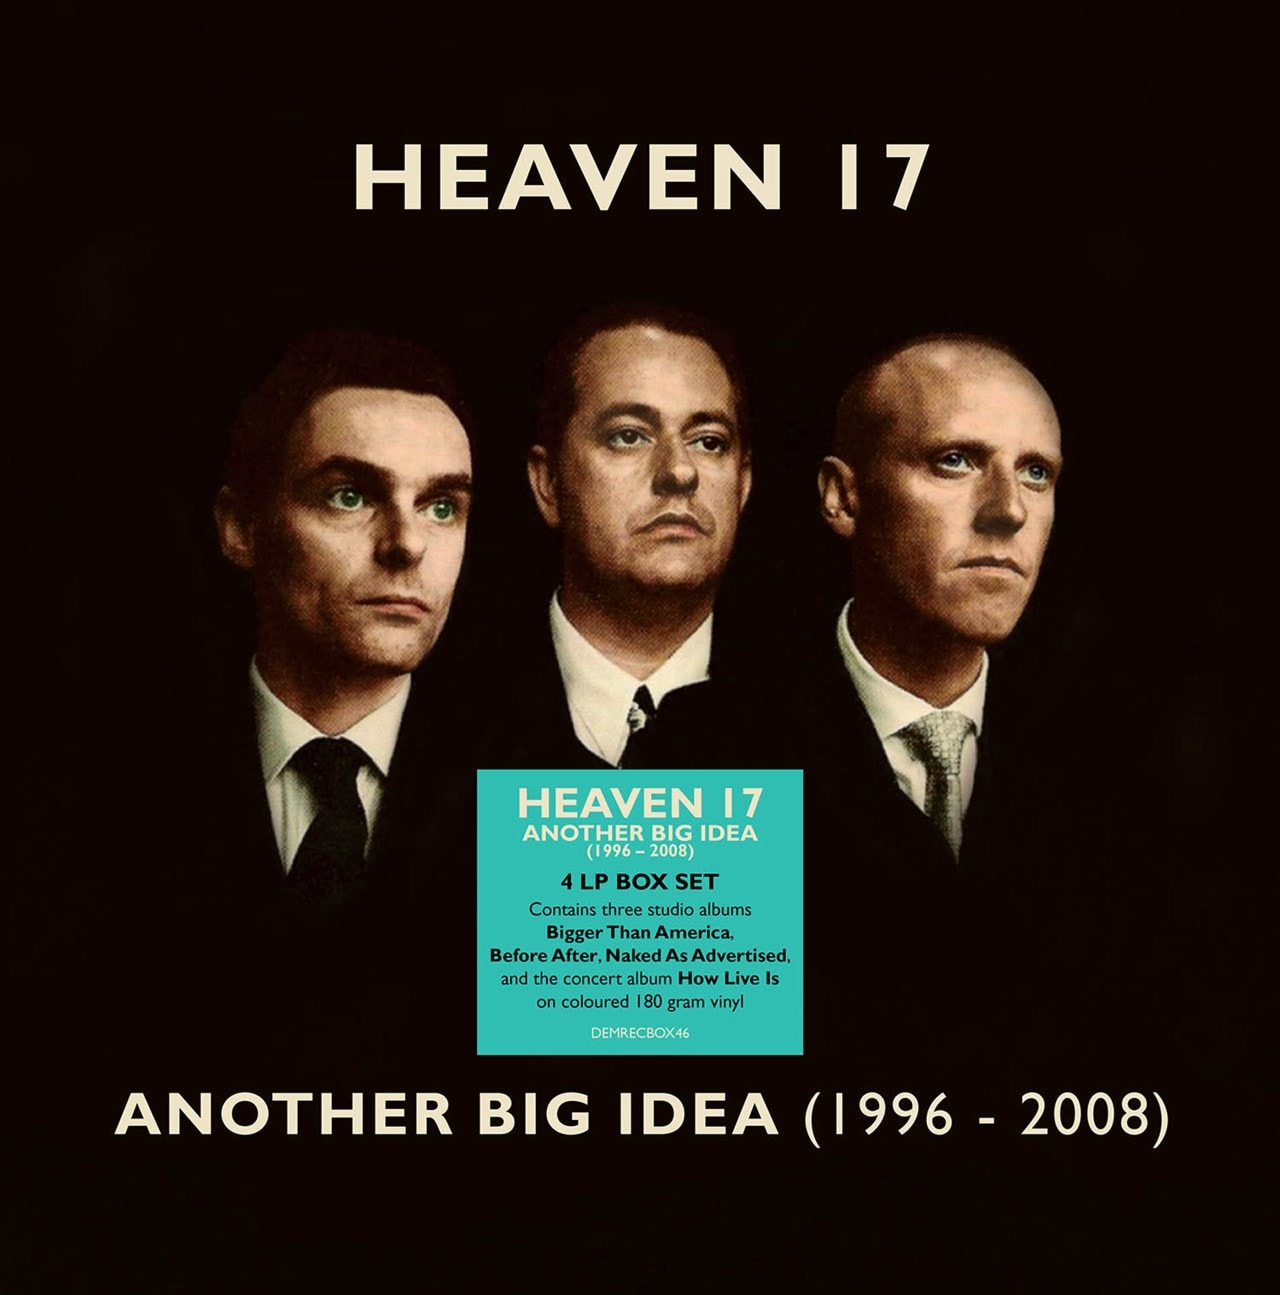 Another Big Idea (1996-2008) - 1